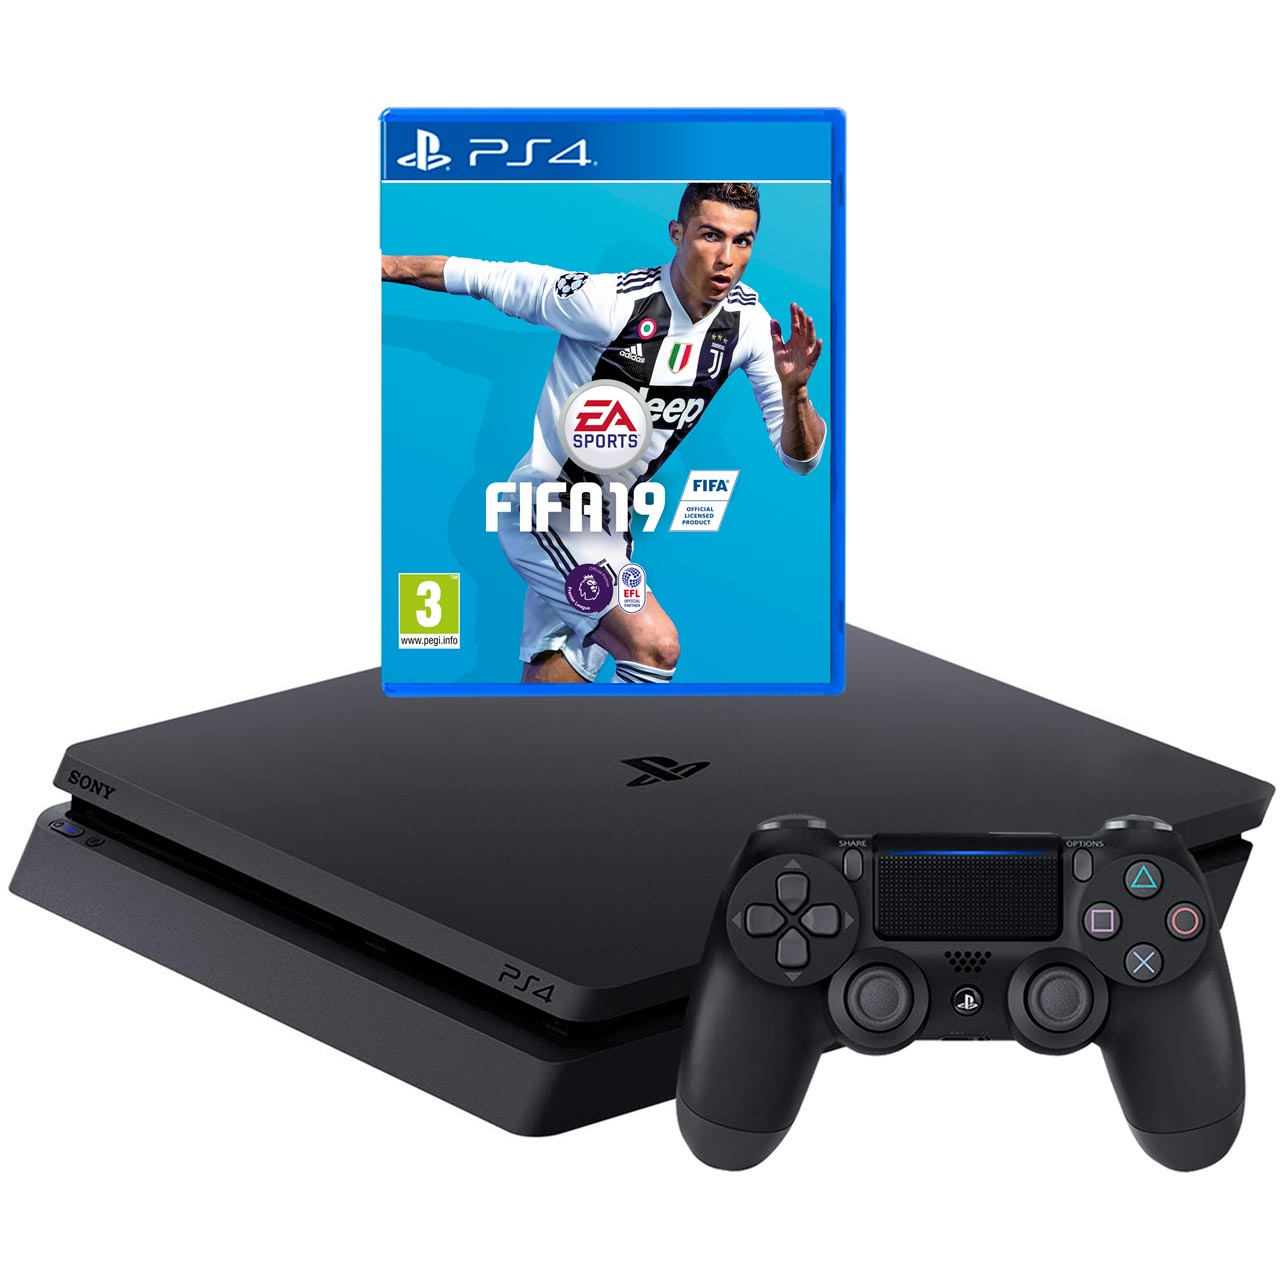 P4hehwsny74351 Playstation 4 500gb With Fifa 19 Sony Ps4 Black